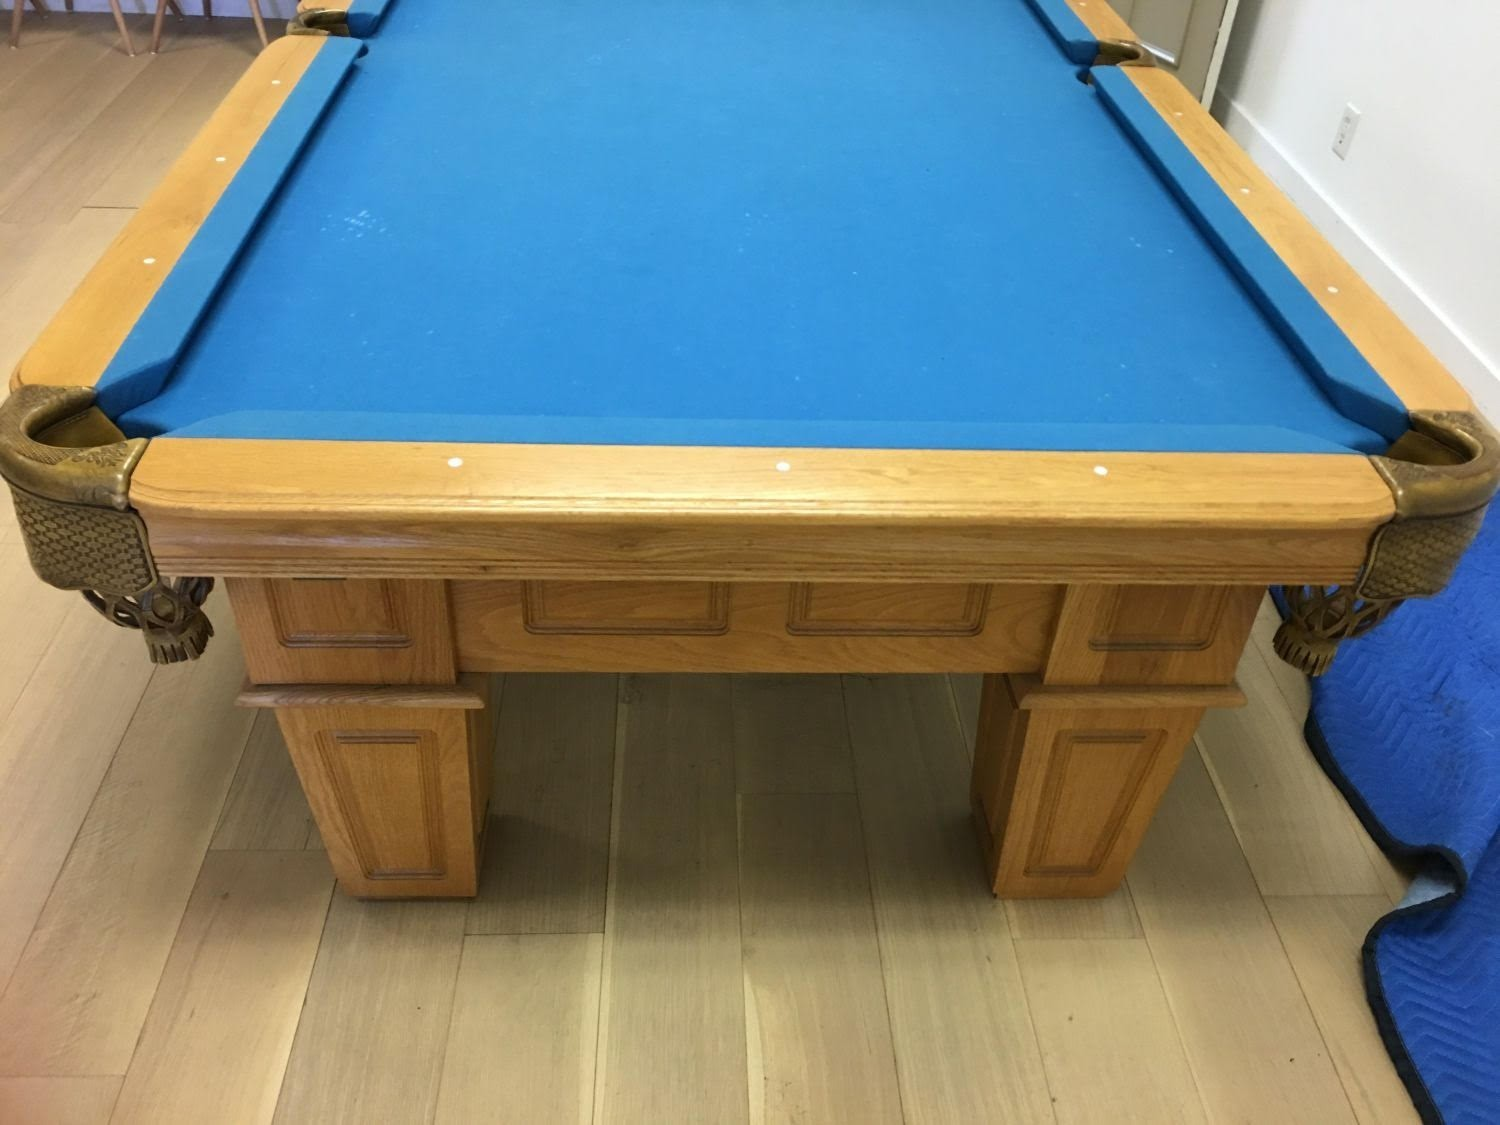 POOL TABLES Preowned Used Billiard Tables GREAT PRICES - Pool table movers corona ca